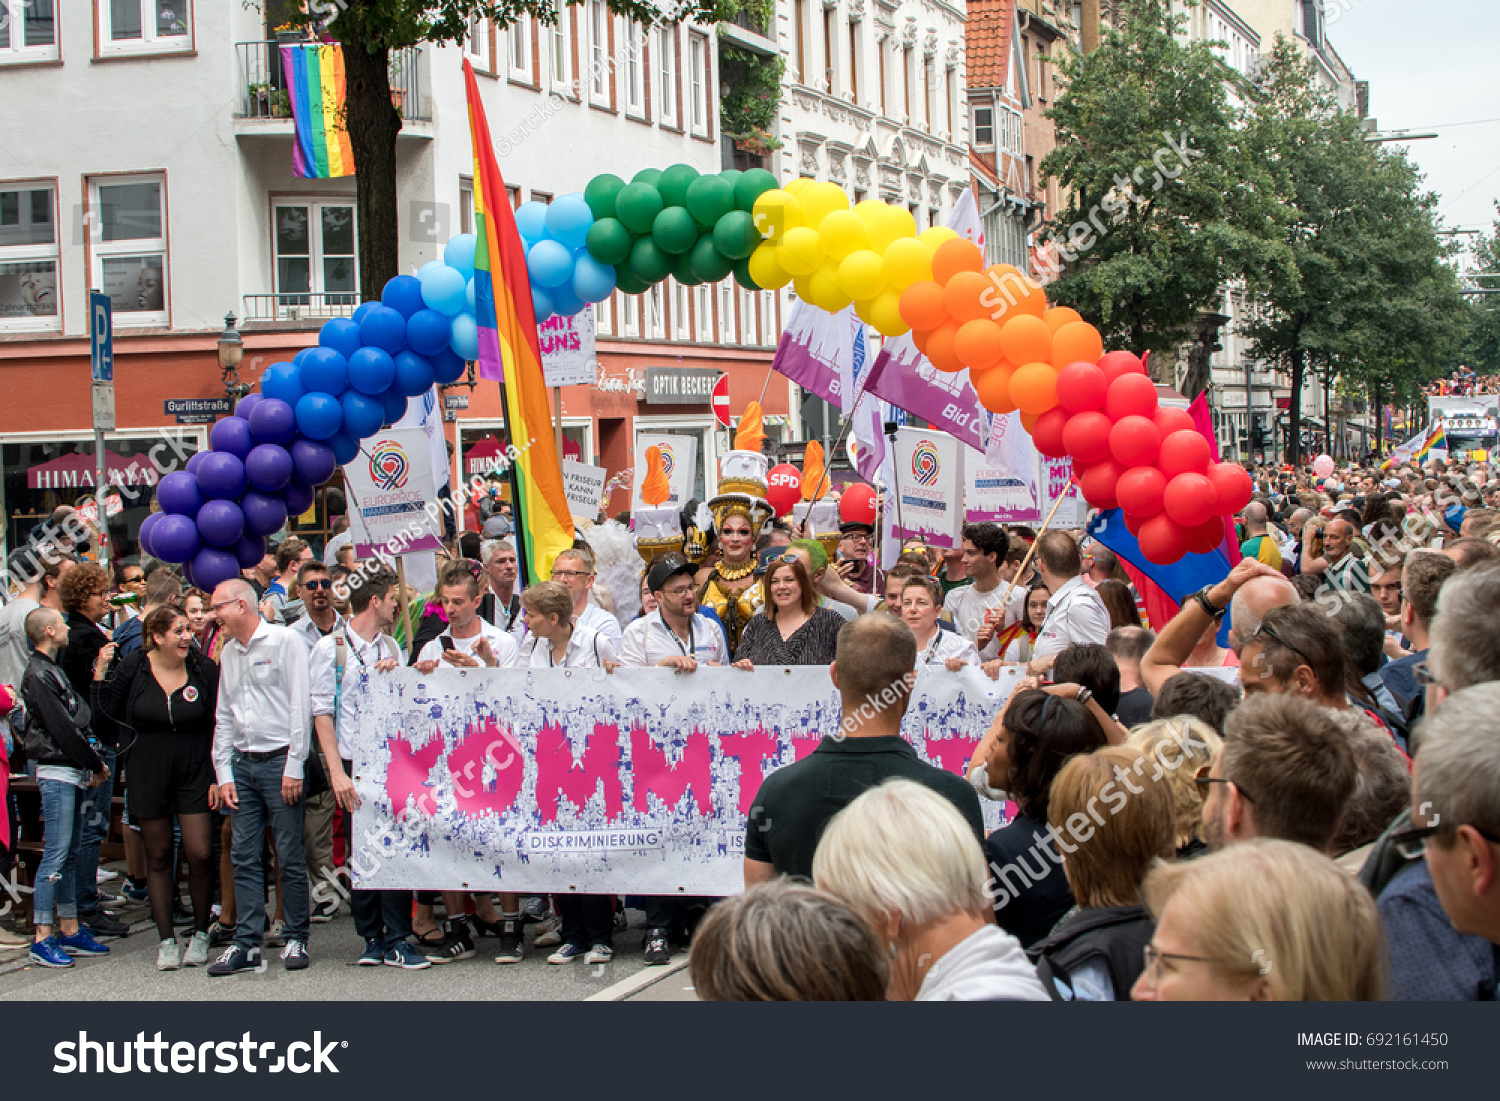 Himalaya Hamburg Csd Hamburg Christopher Street Day Hamburg Stock Photo Edit Now